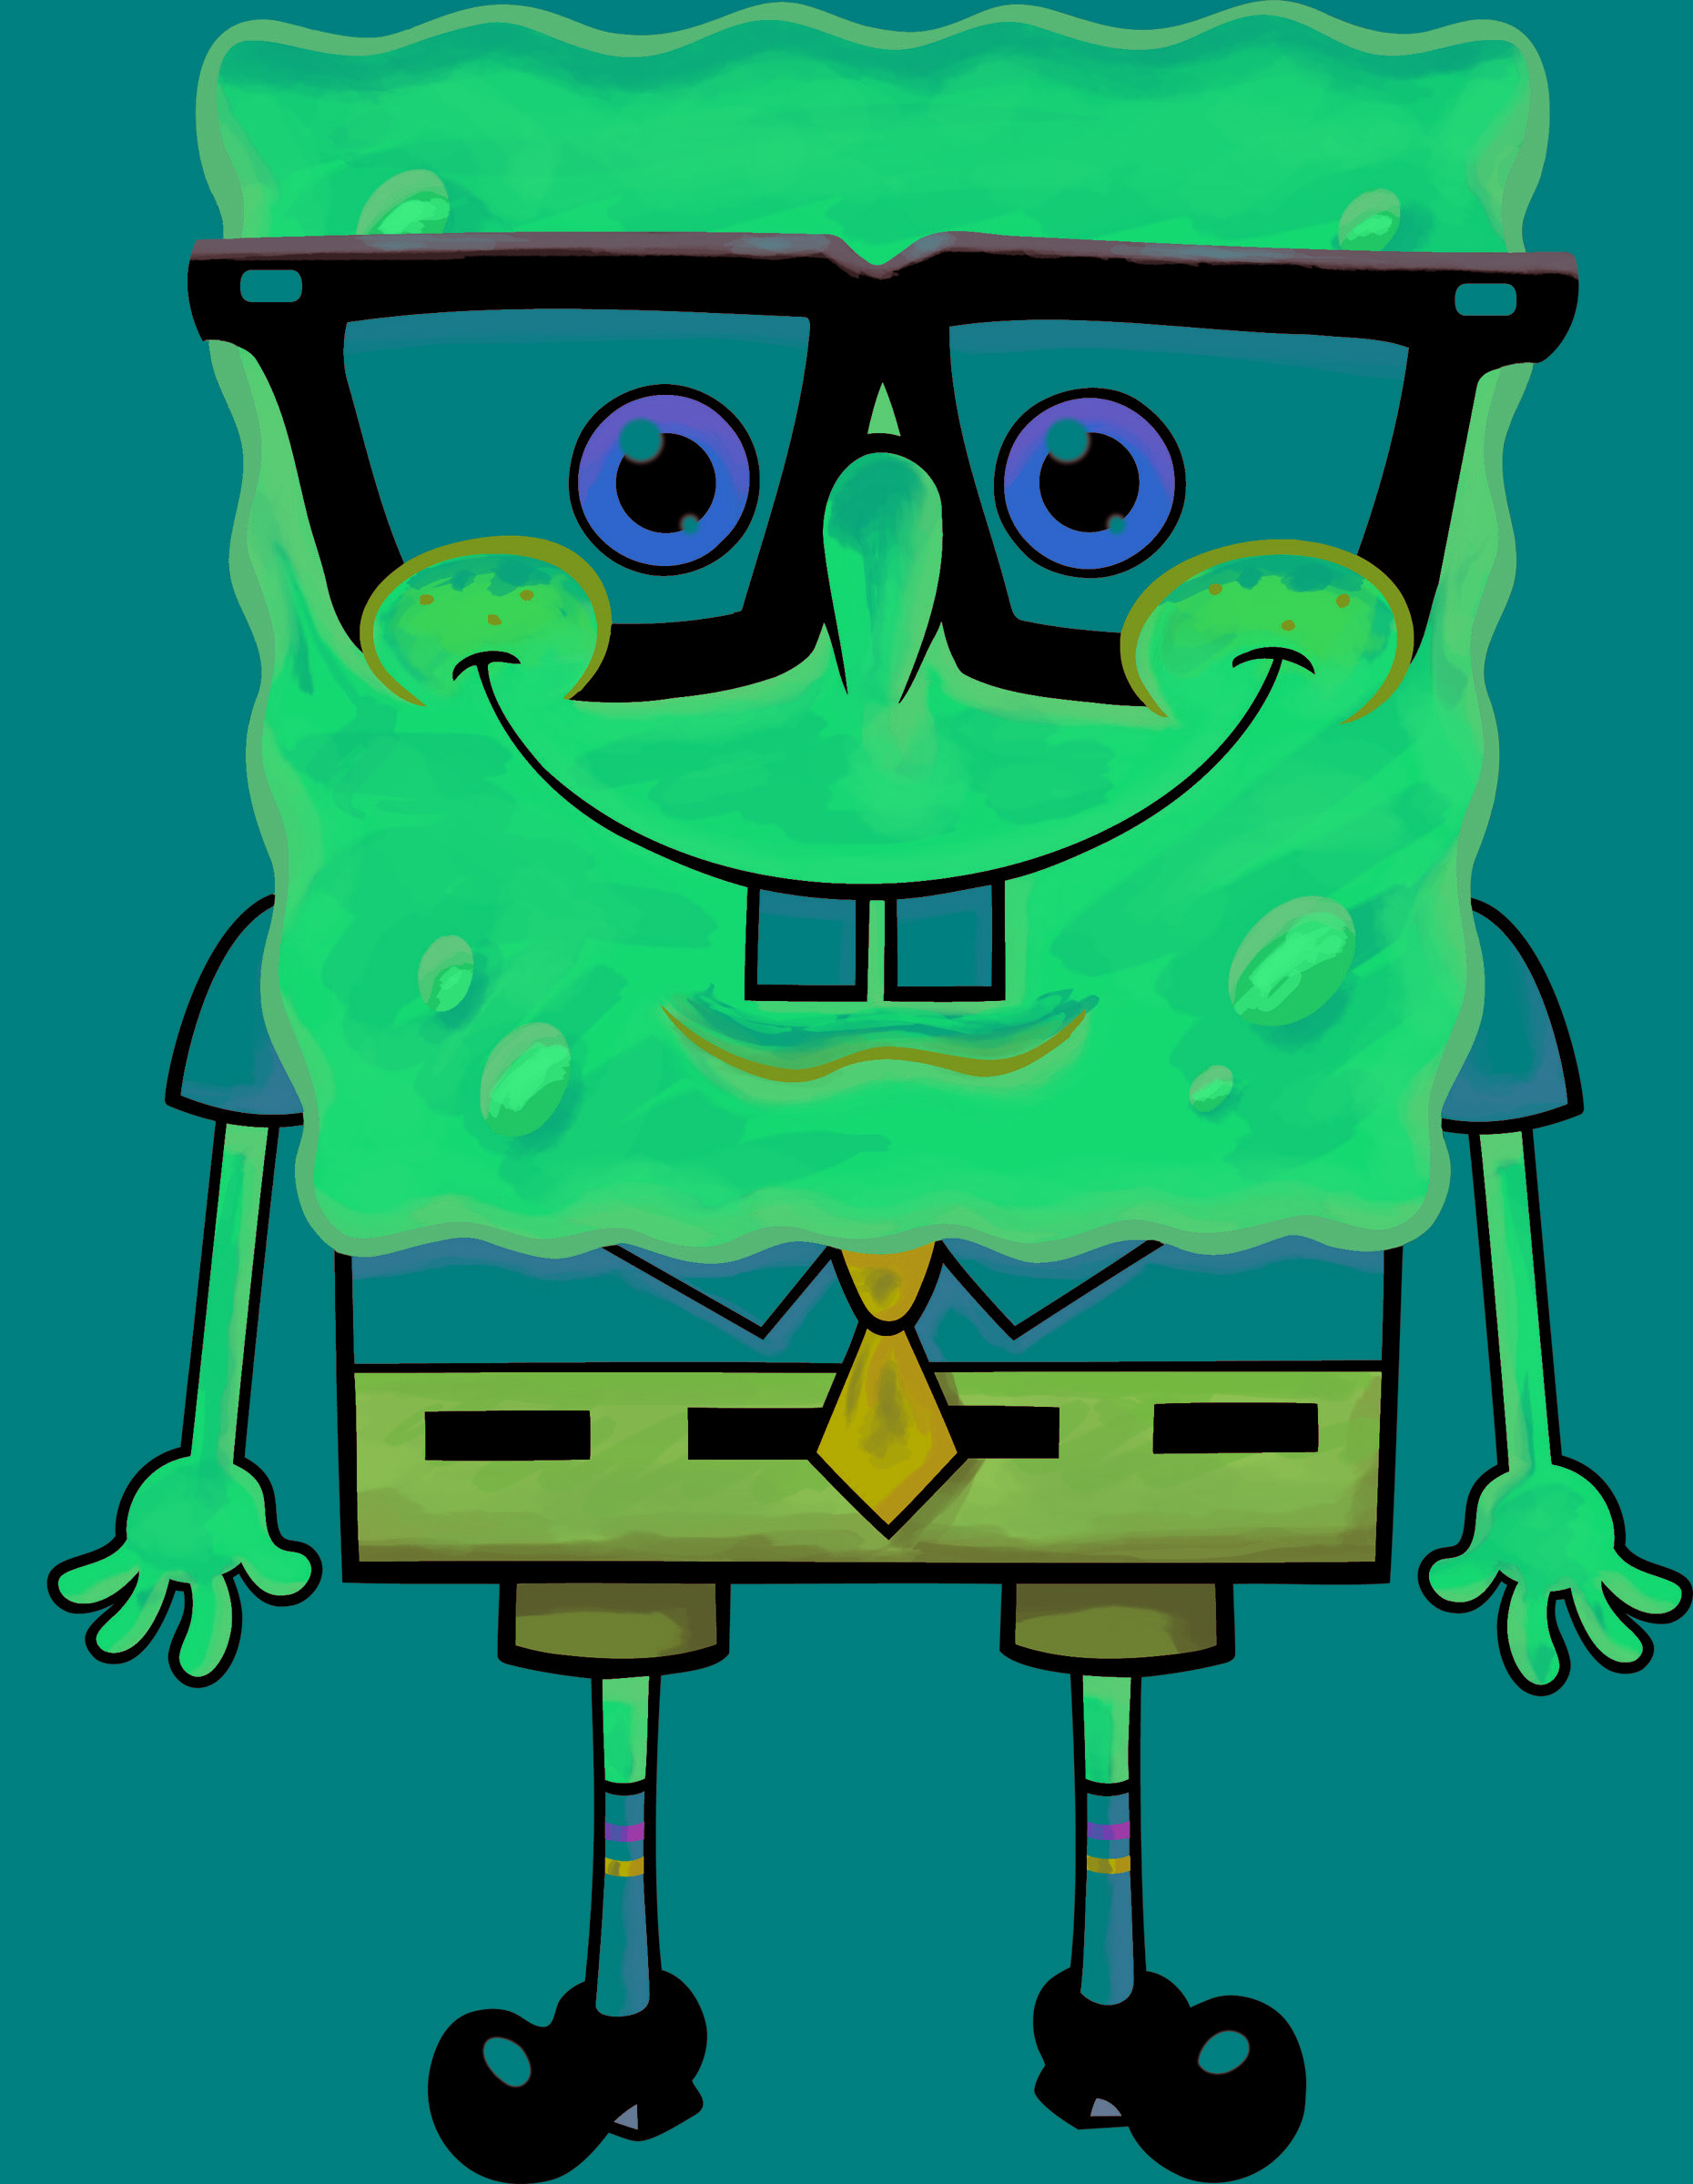 1860x2400 Spongebob Squarepants Wallpaper Image for Phone - Cartoons ...